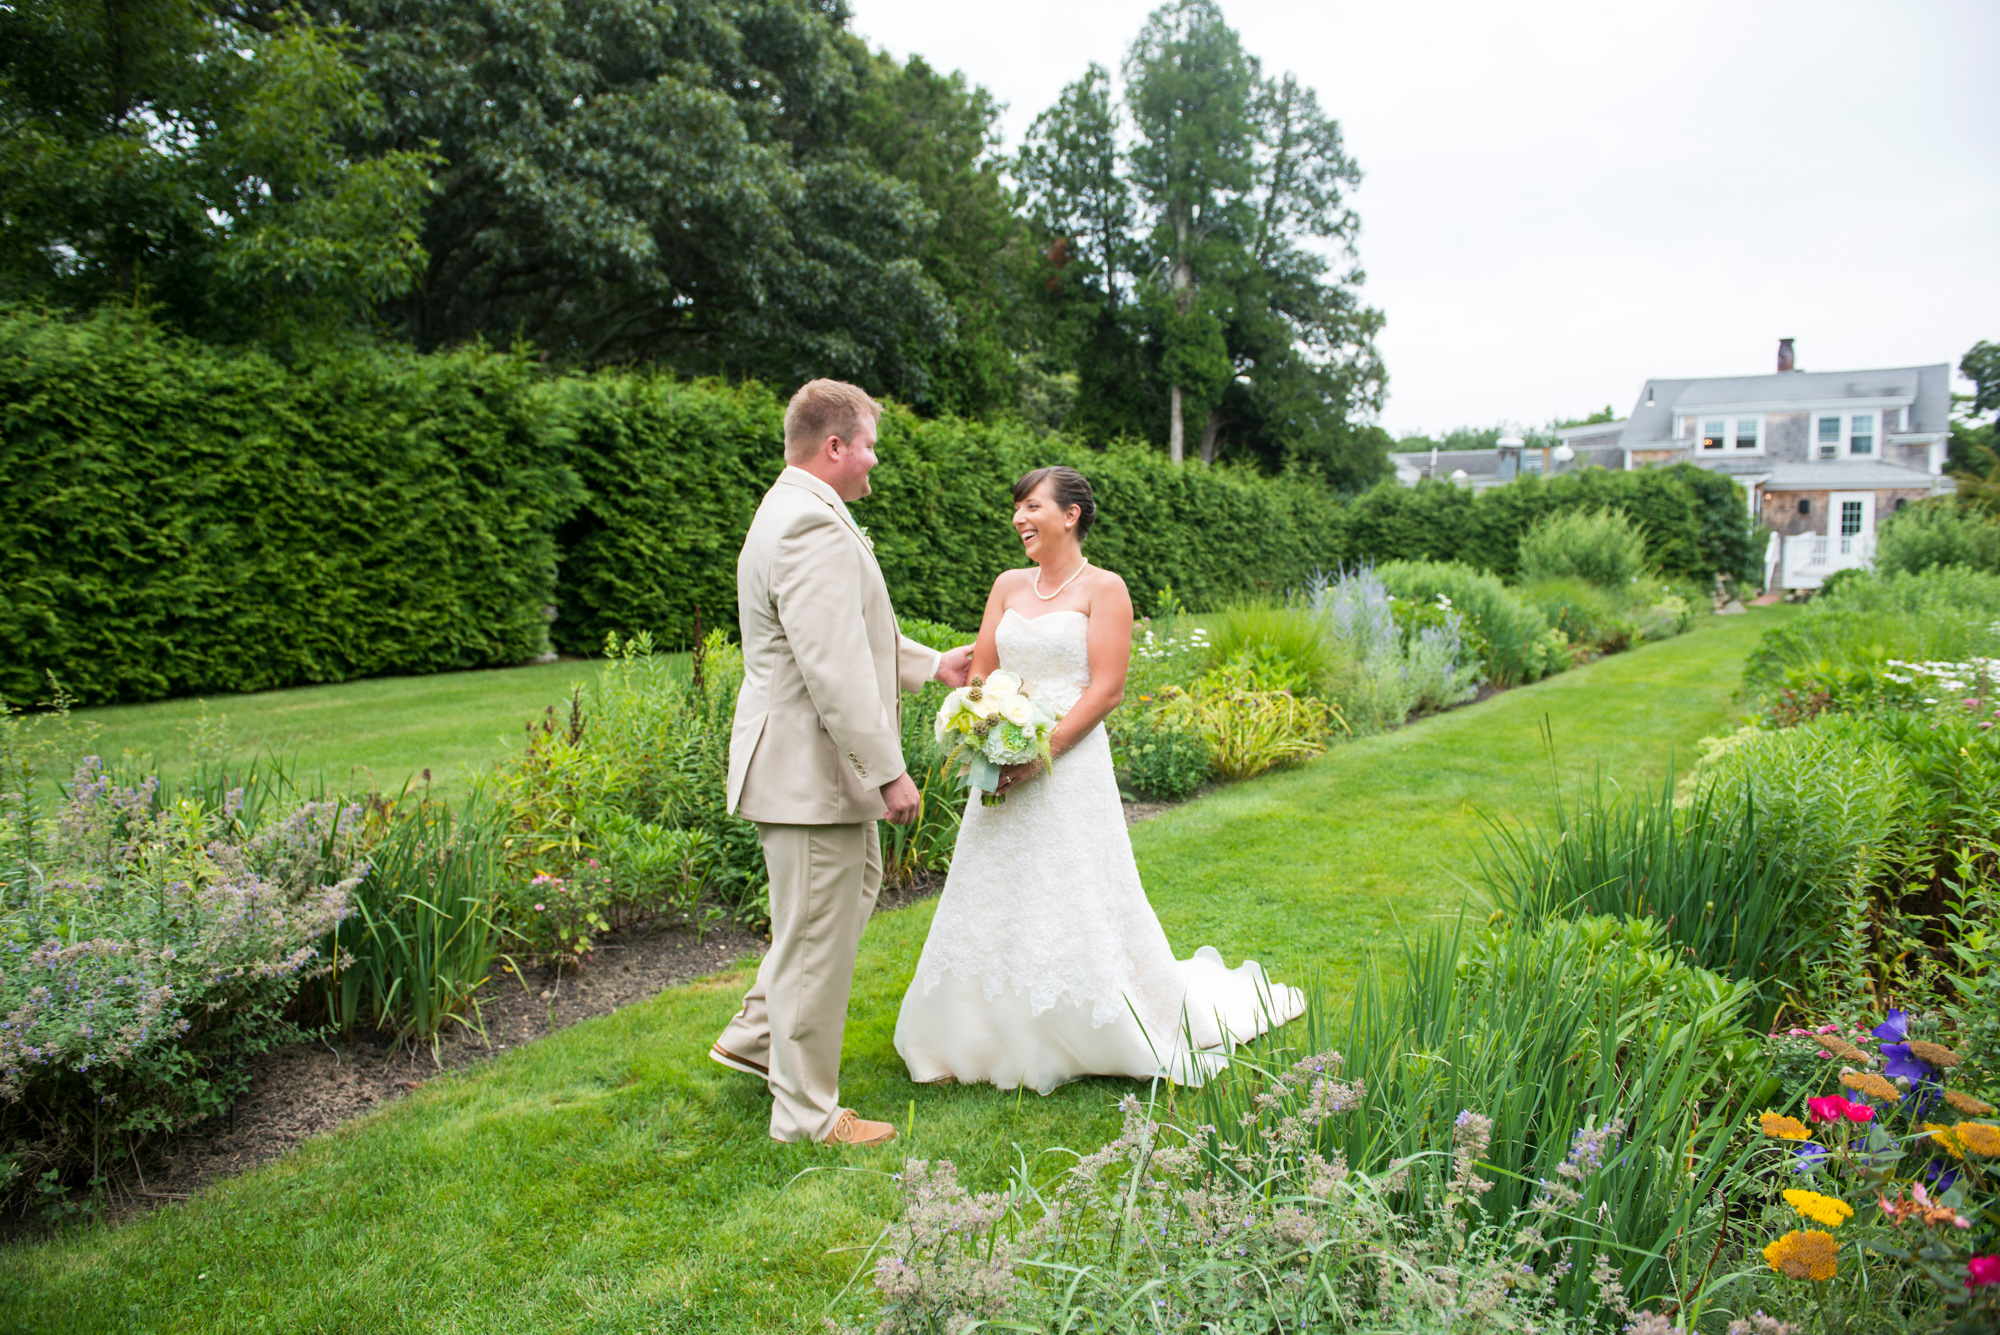 A bride and groom in the English Garden at Lambert's Cove Inn photo by David Welch Photography